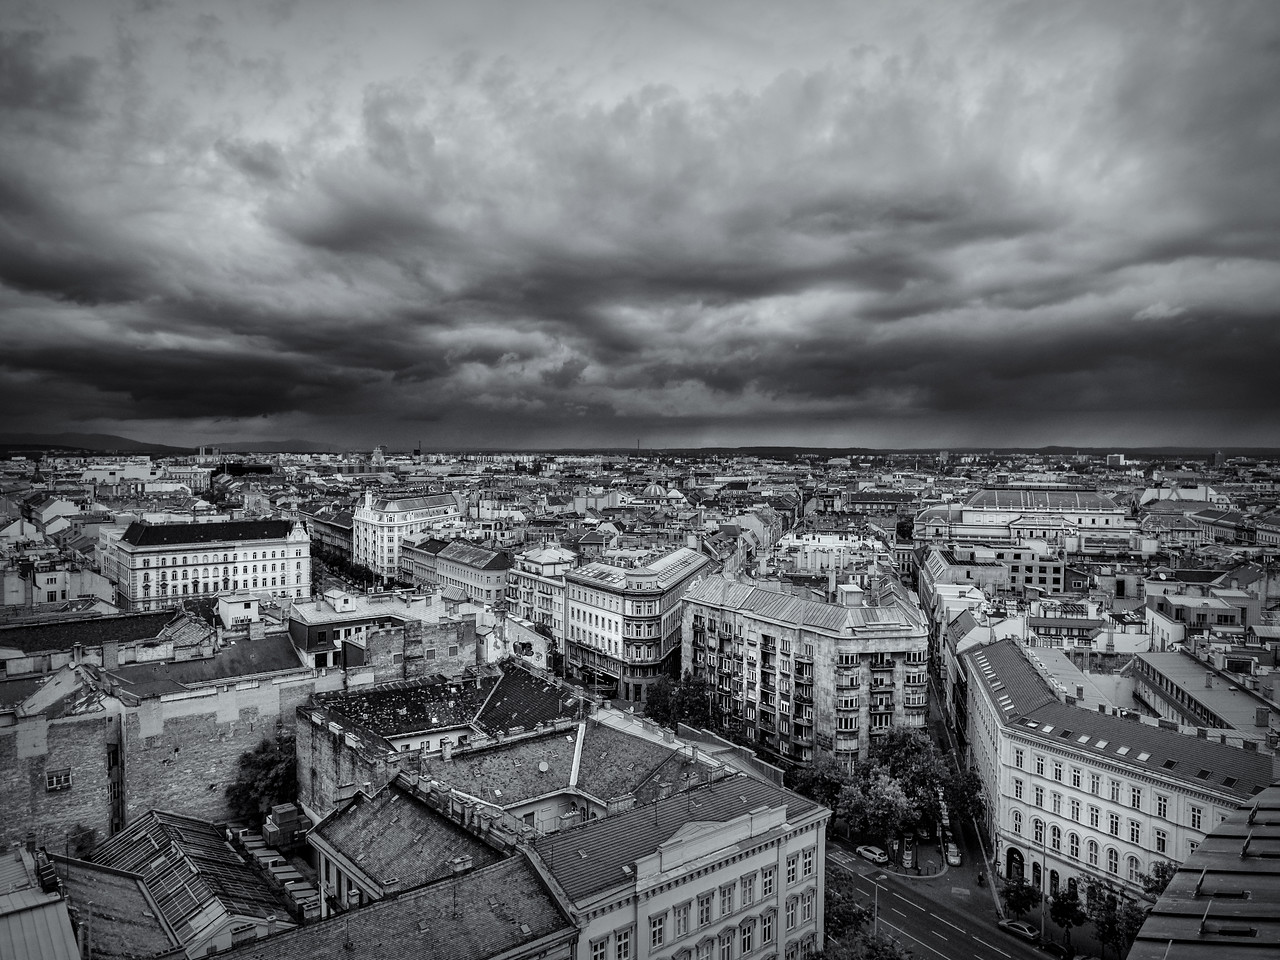 Overview of the city from St. Stephens Basilica, Budapest, Hungary